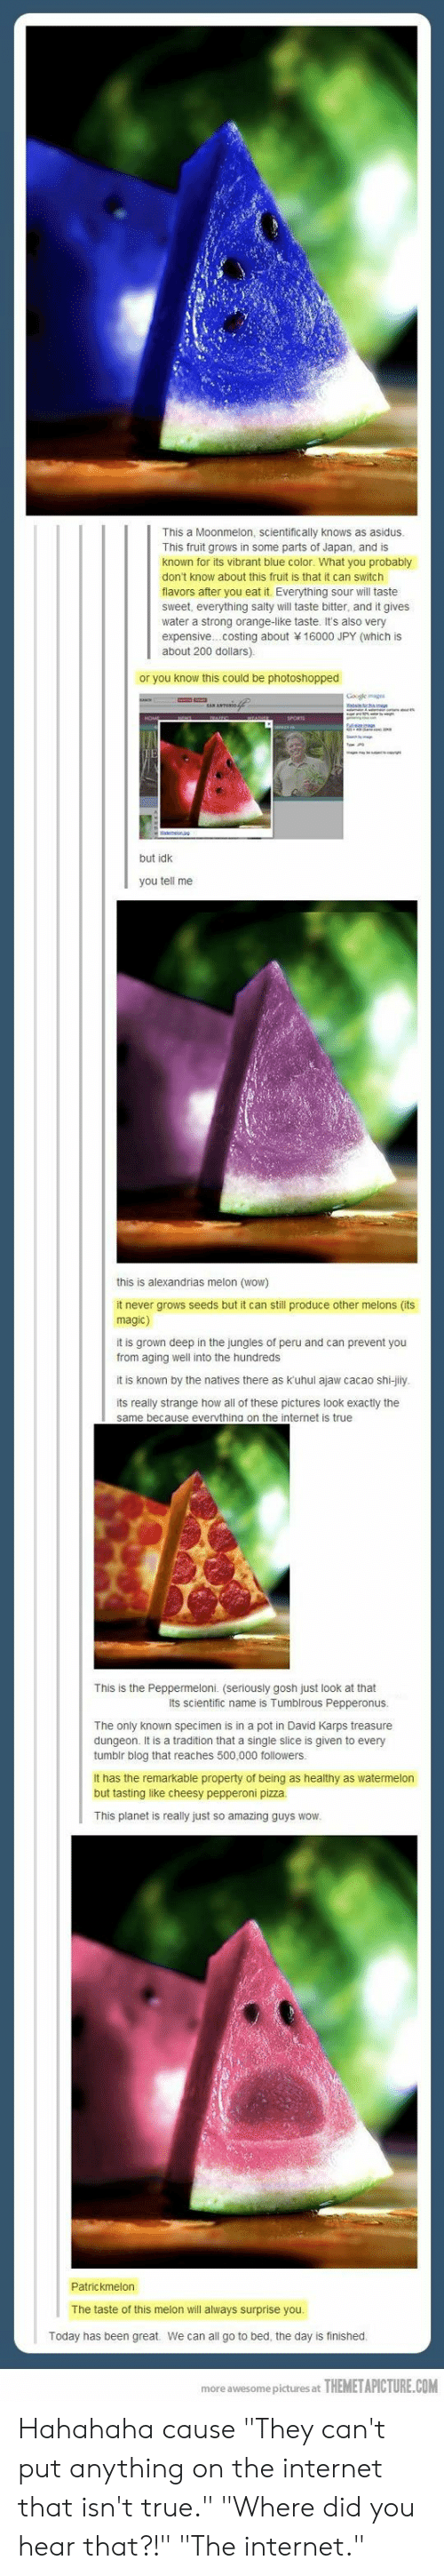 """Internet, Pizza, and Being Salty: This a Moonmelon, scientifically knows as asidus  This fruit grows in some parts of Japan, and is  known for its vibrant blue color. What you probably  don't know about this fruit is that it can switch  flavors after you eat it. Everything sour will taste  sweet, everything salty will taste bitter, and it gives  water a strong orange-like taste. It's also very  expensive...costing about 16000 JPY (which is  about 200 dollars)  or you know this could be photoshopped  but idk  you tell me  this is alexandrias melon (wow)  it never grows seeds but it can still produce other melons (its  magic)  it is grown deep in the jungles of peru and can prevent you  from aging well into the hundreds  it is known by the natives there as kuhul ajaw cacao shi-jily  its really strange how all of these pictures look exactly the  same because evervthing on the internet is true  This is the Peppermeloni. (seriously gosh just look at that  Its scientific name is Tumblrous Pepperonus  The only known specimen is in a pot in David Karps treasure  dungeon. It is a tradition that a single slice is given to every  tumbir blog that reaches 500,000 followers  It has the remarkable property of being as healthy as watermelon  but tasting like cheesy pepperoni pizza  This planet is really just so amazing guys wow  The taste of this melon wil always surprise you  Today has been great  We can all go to bed, the day is finished  more awesome pictures at  THEMETAPICTURE.COM Hahahaha cause """"They can't put anything on the internet that isn't true."""" """"Where did you hear that?!"""" """"The internet."""""""